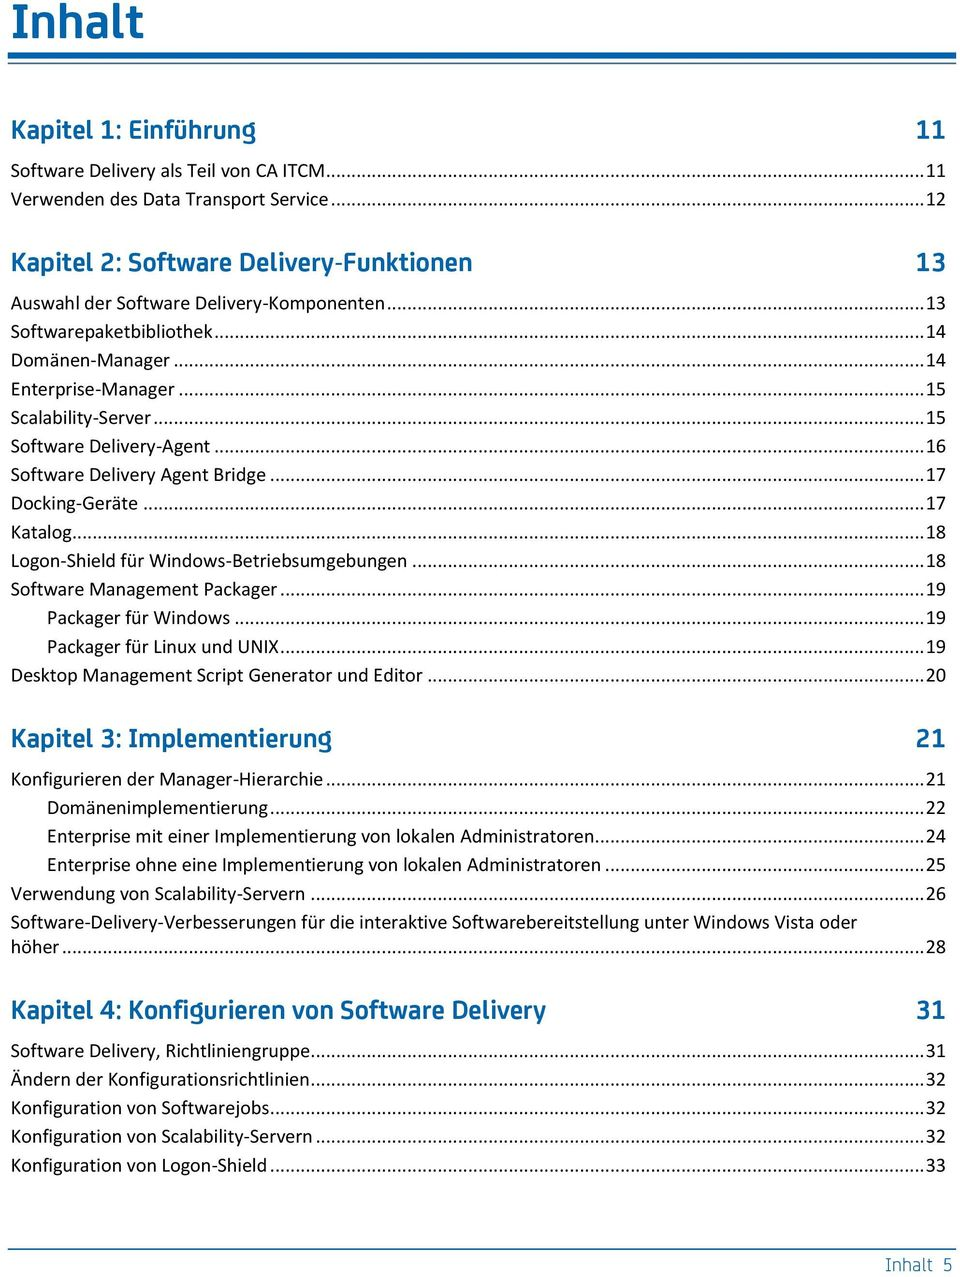 .. 15 Software Delivery-Agent... 16 Software Delivery Agent Bridge... 17 Docking-Geräte... 17 Katalog... 18 Logon-Shield für Windows-Betriebsumgebungen... 18 Software Management Packager.